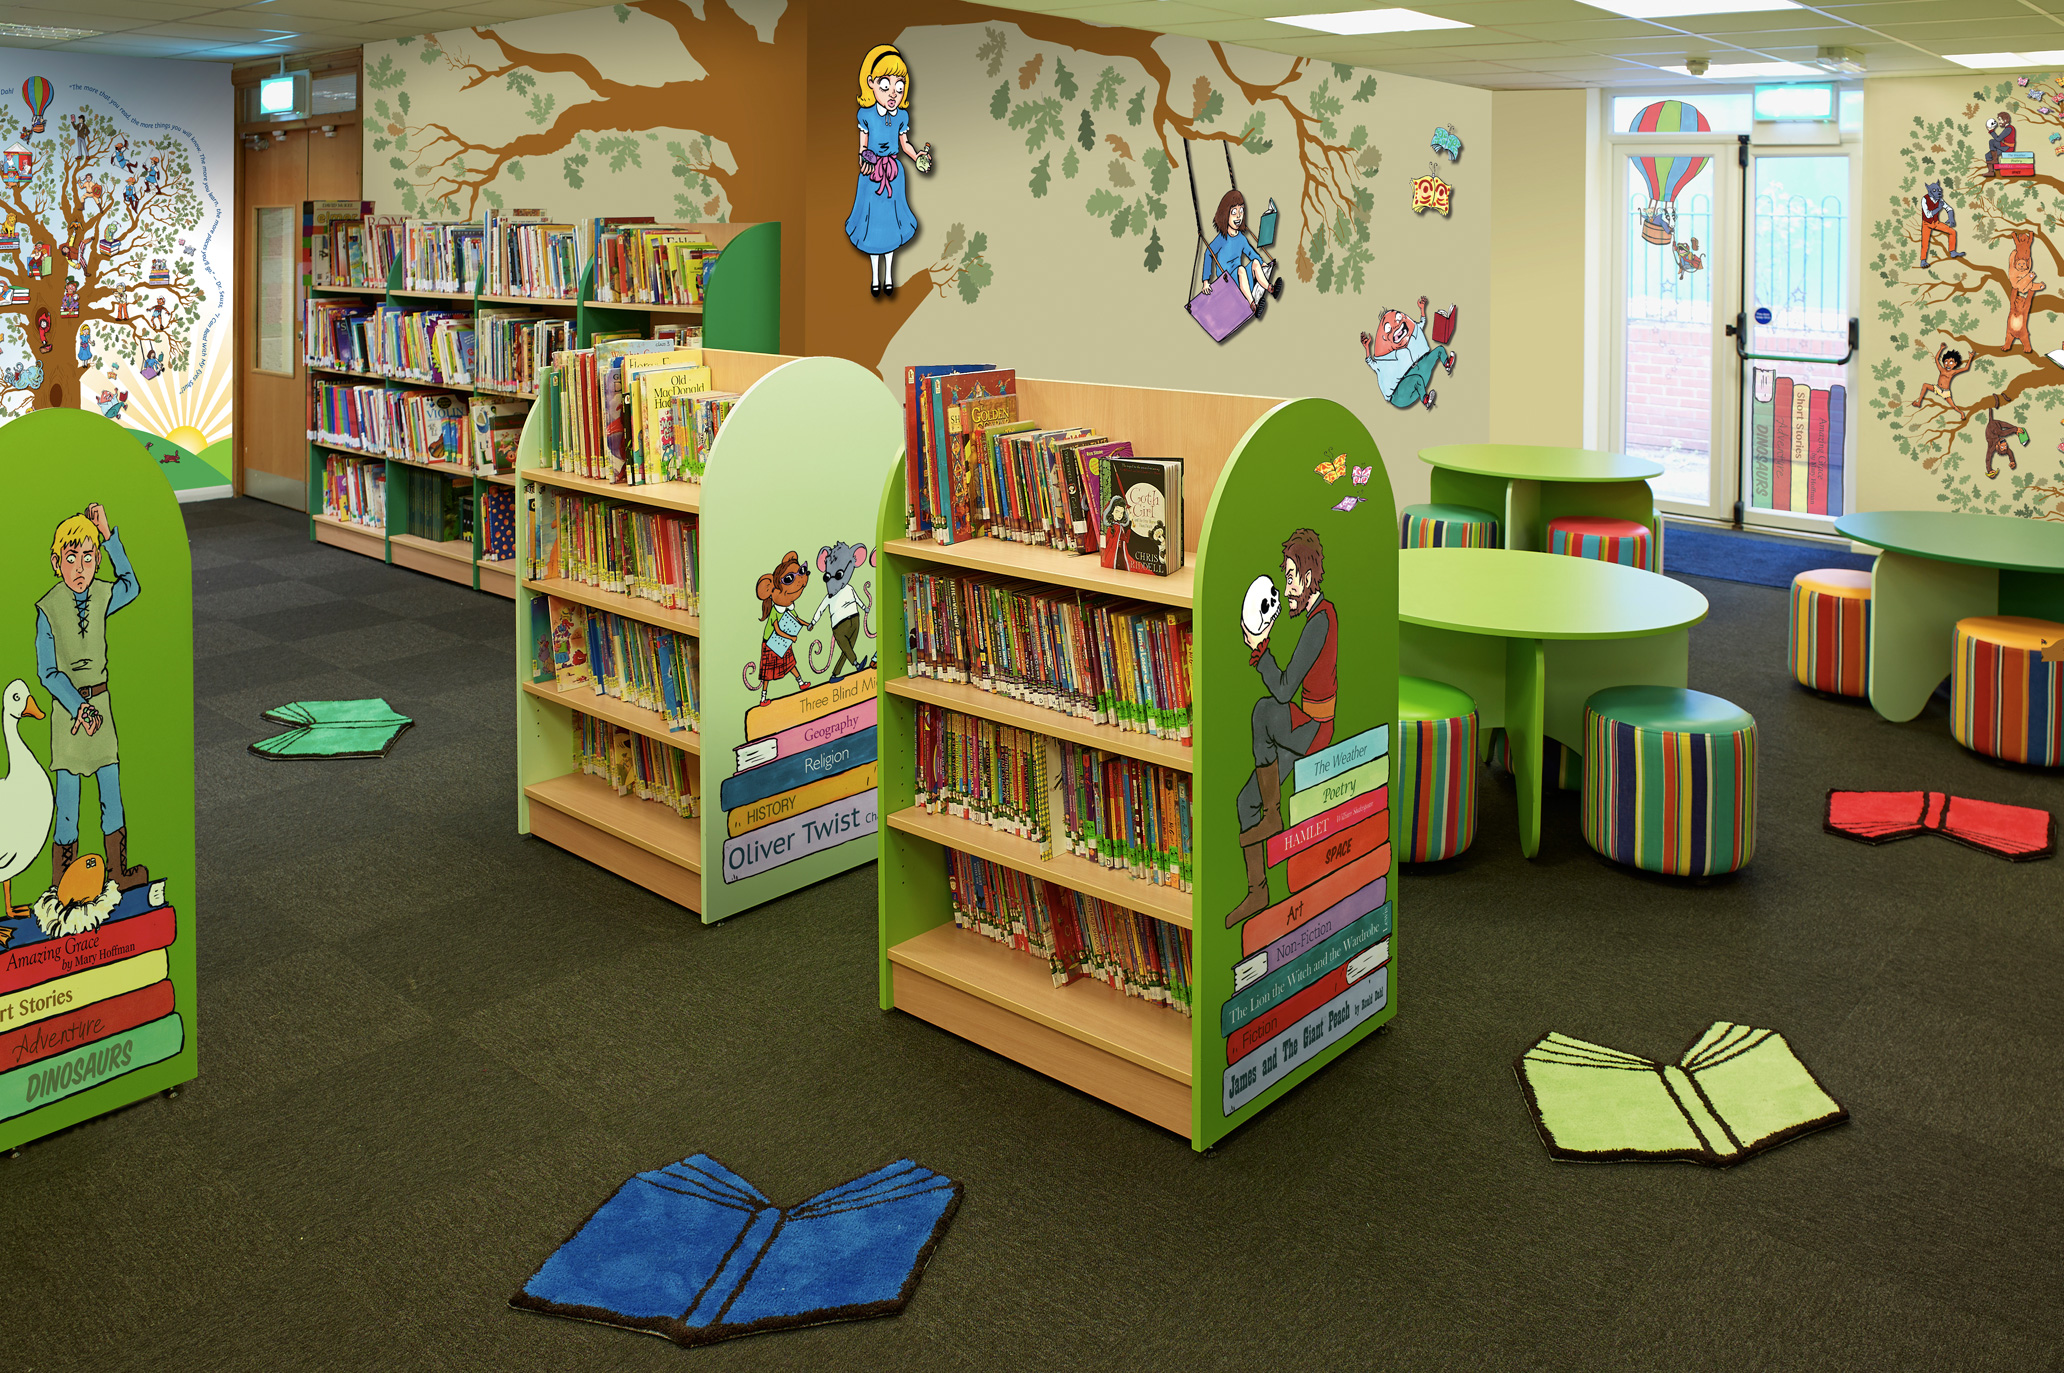 Classroom Design To Promote Literacy : Classroom reading area library displays the magical